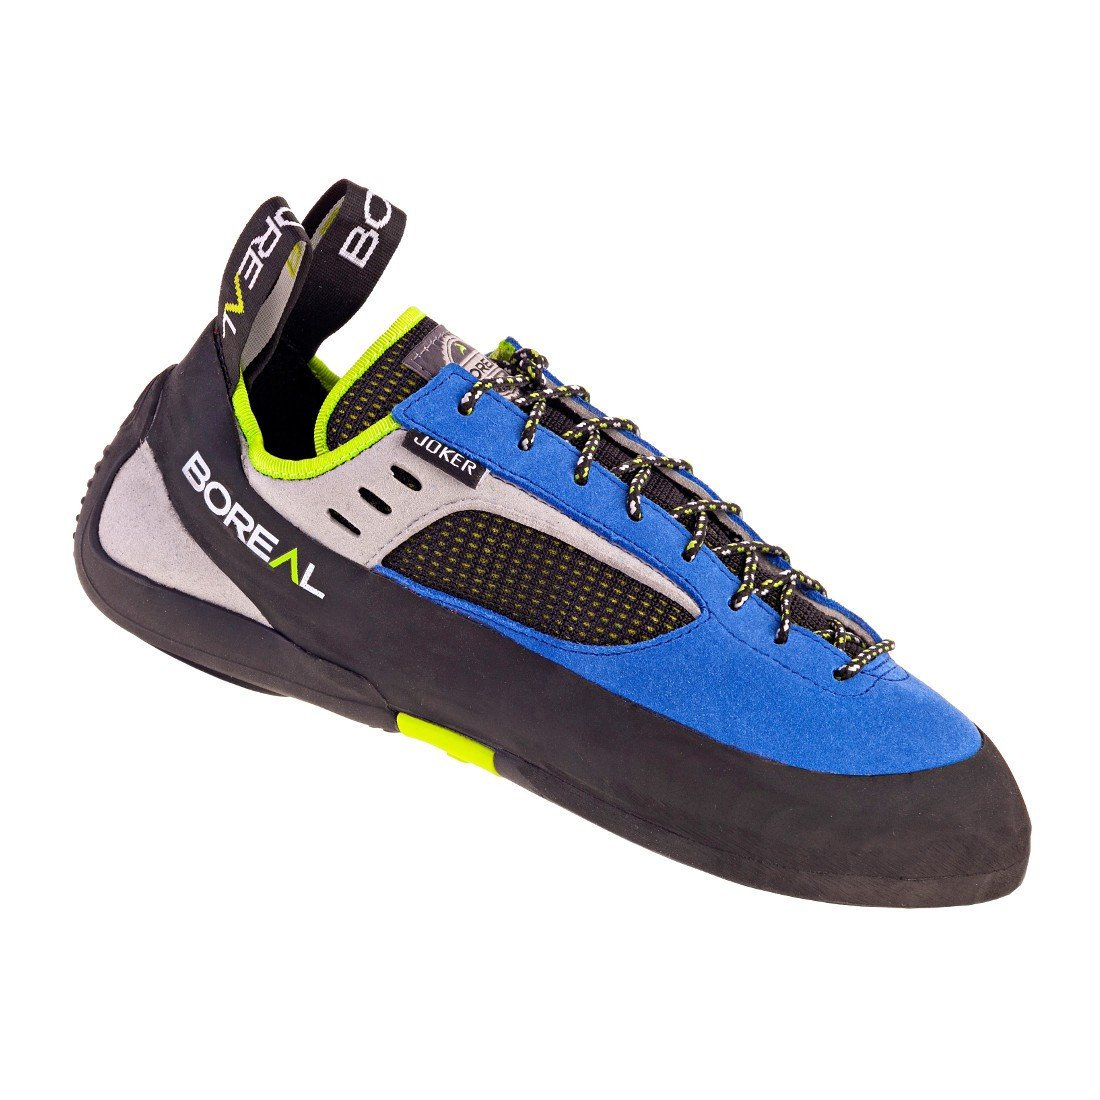 Boreal Joker Lace climbing shoe black, in blue, grey and black